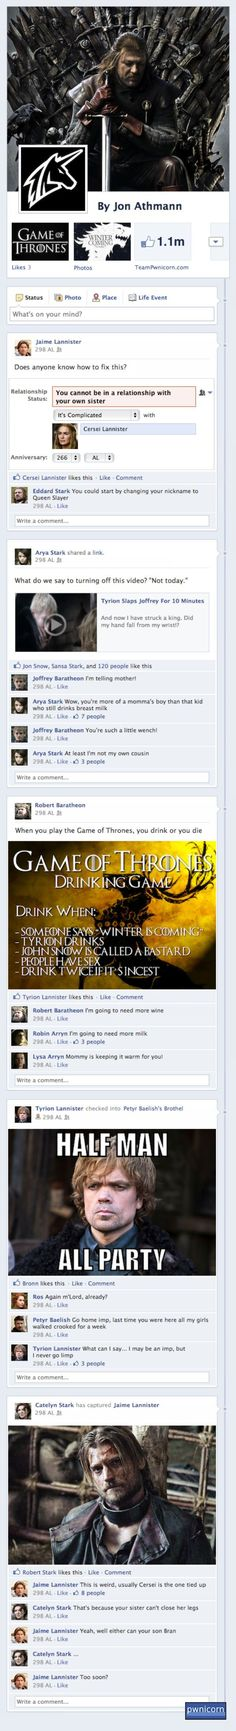 Si les personnages de Game of Thrones utilisaient Facebook...